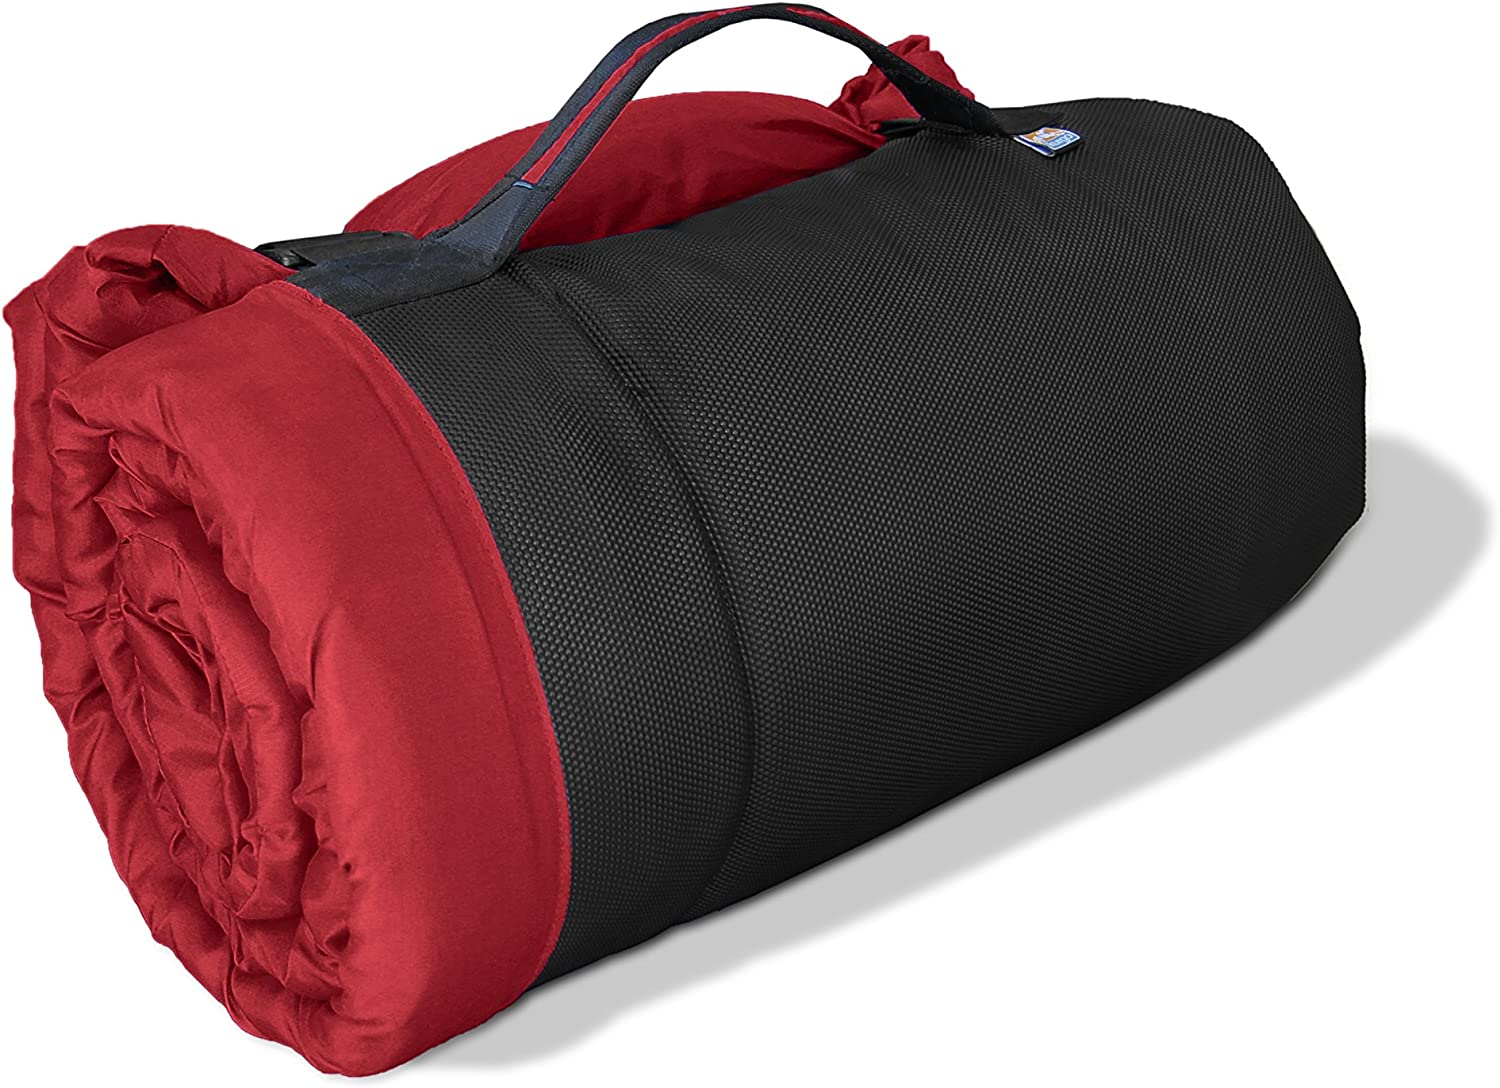 Kurgo Waterproof Dog Bed Outdoor Bed for Dogs Portable Bed Roll for Pets Travel Hiking Camping Wander Loft Dog Bed Chili Red Medium